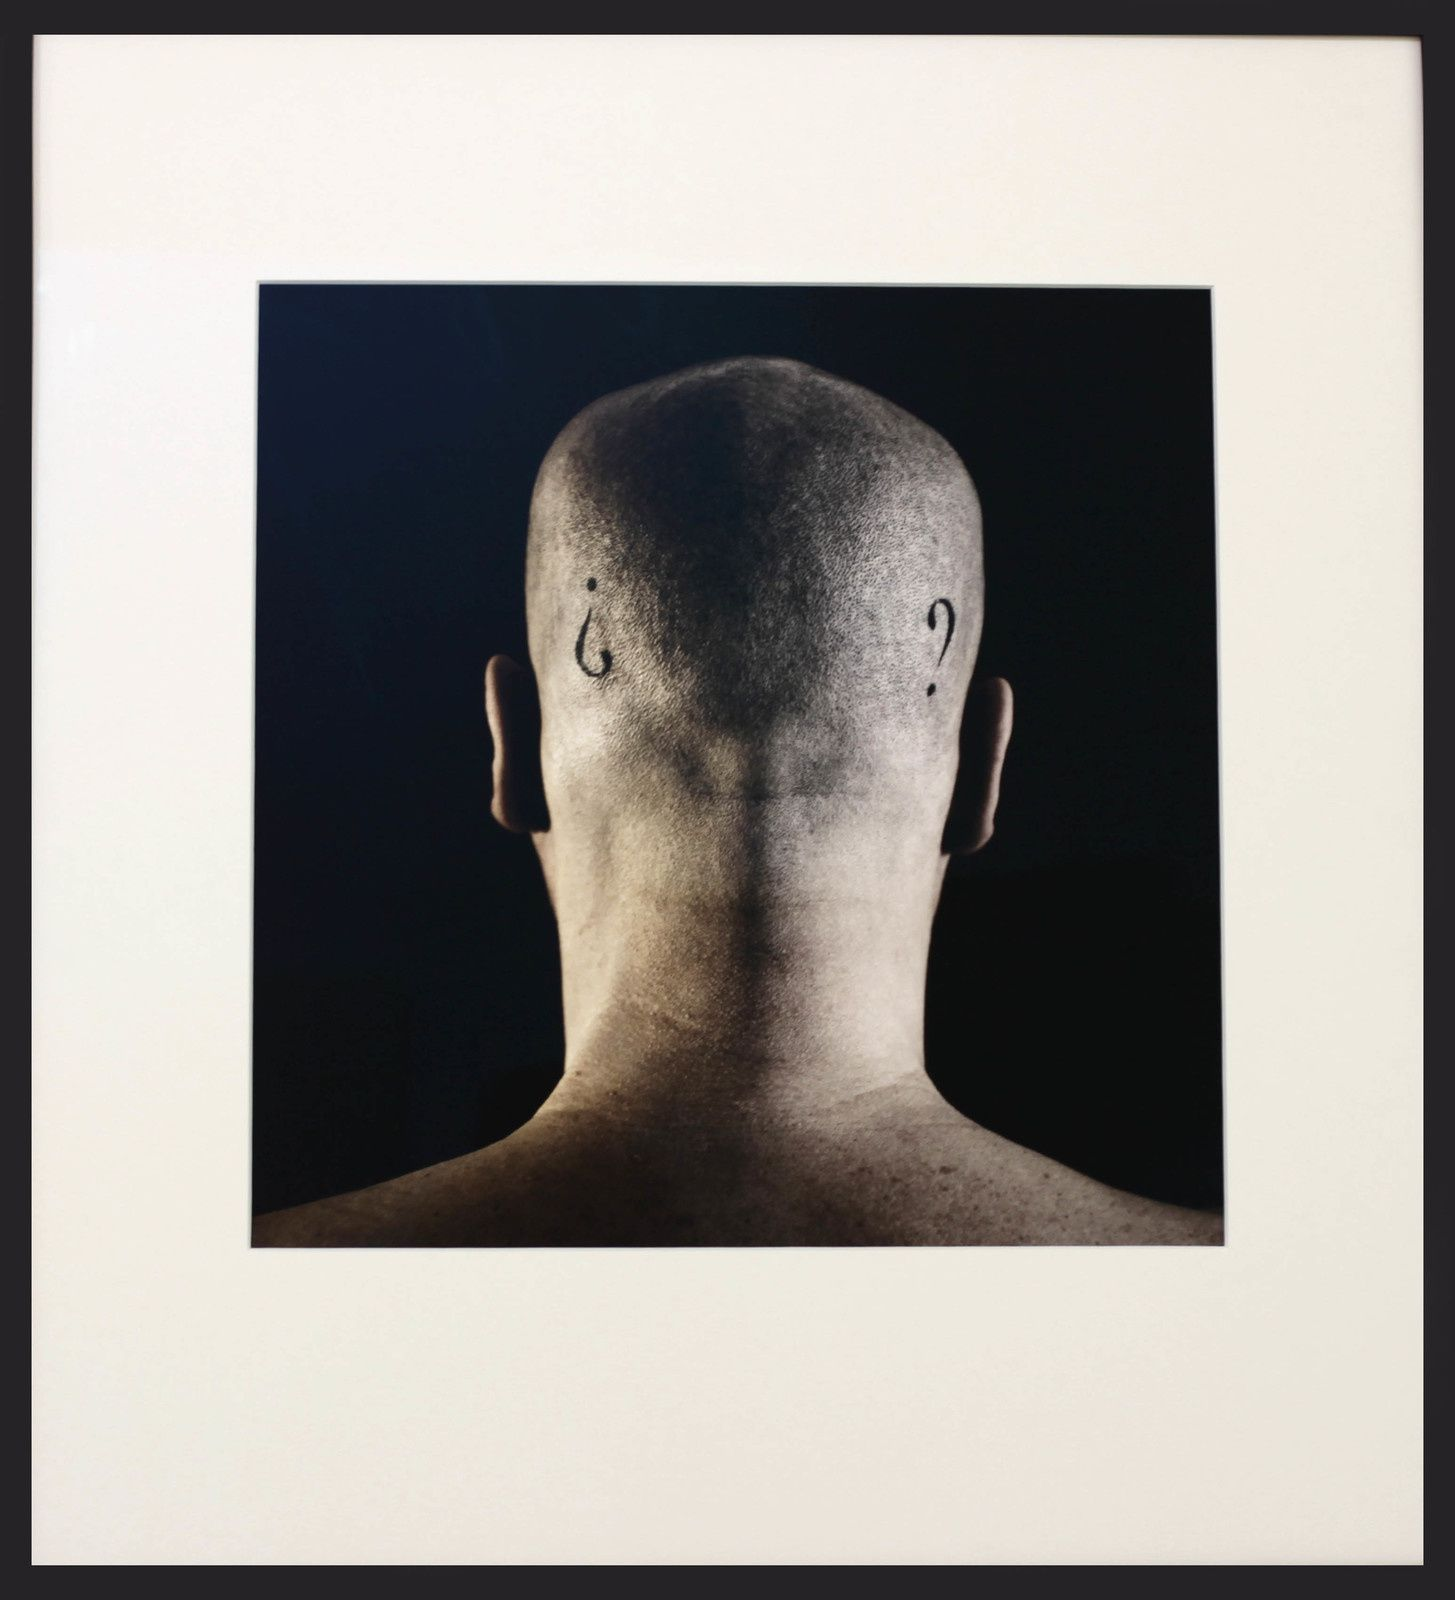 """La gran incognita (Autoportrait)"", 2015 de Javier PEREZ - Courtesy Galerie Papillon © Photo Éric Simon"